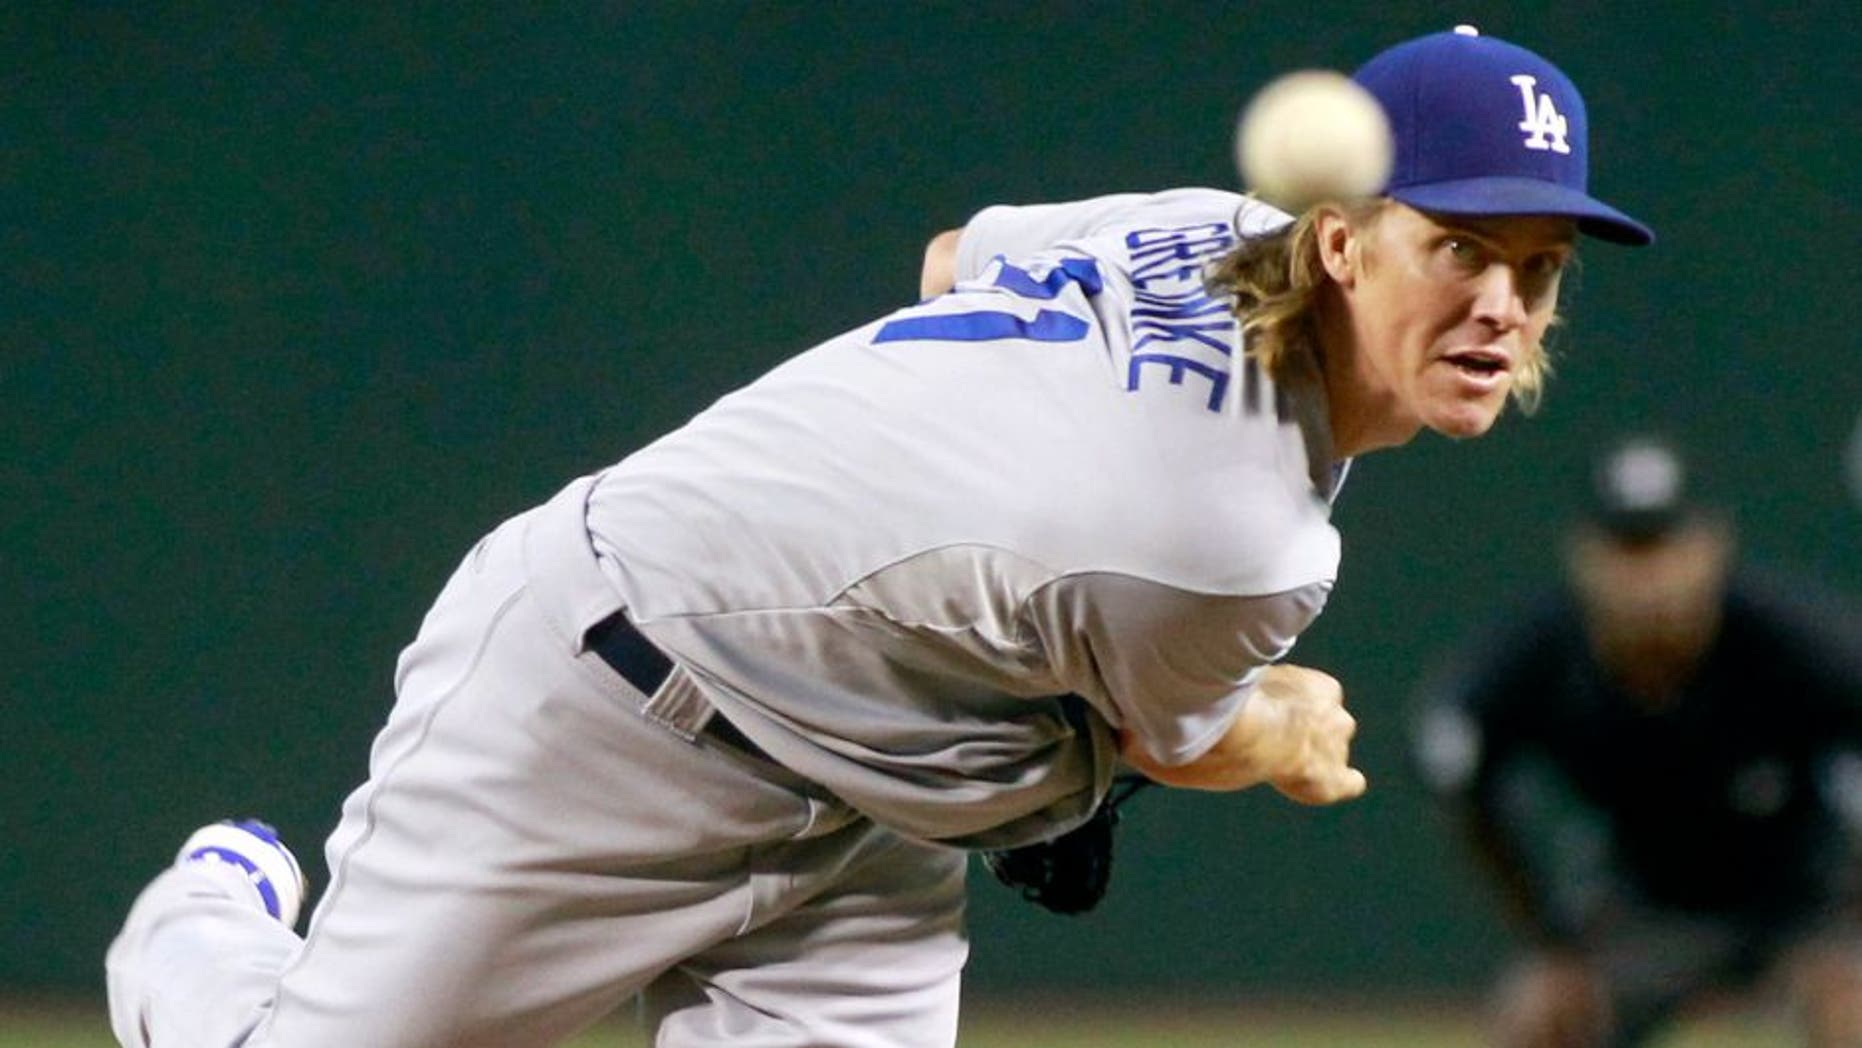 Los Angeles Dodgers starting pitcher Zach Greinke throws against the Arizona Diamondbacks during the first inning of a baseball game, Sunday, Sept. 13, 2015, in Phoenix. (AP Photo/Ralph Freso)